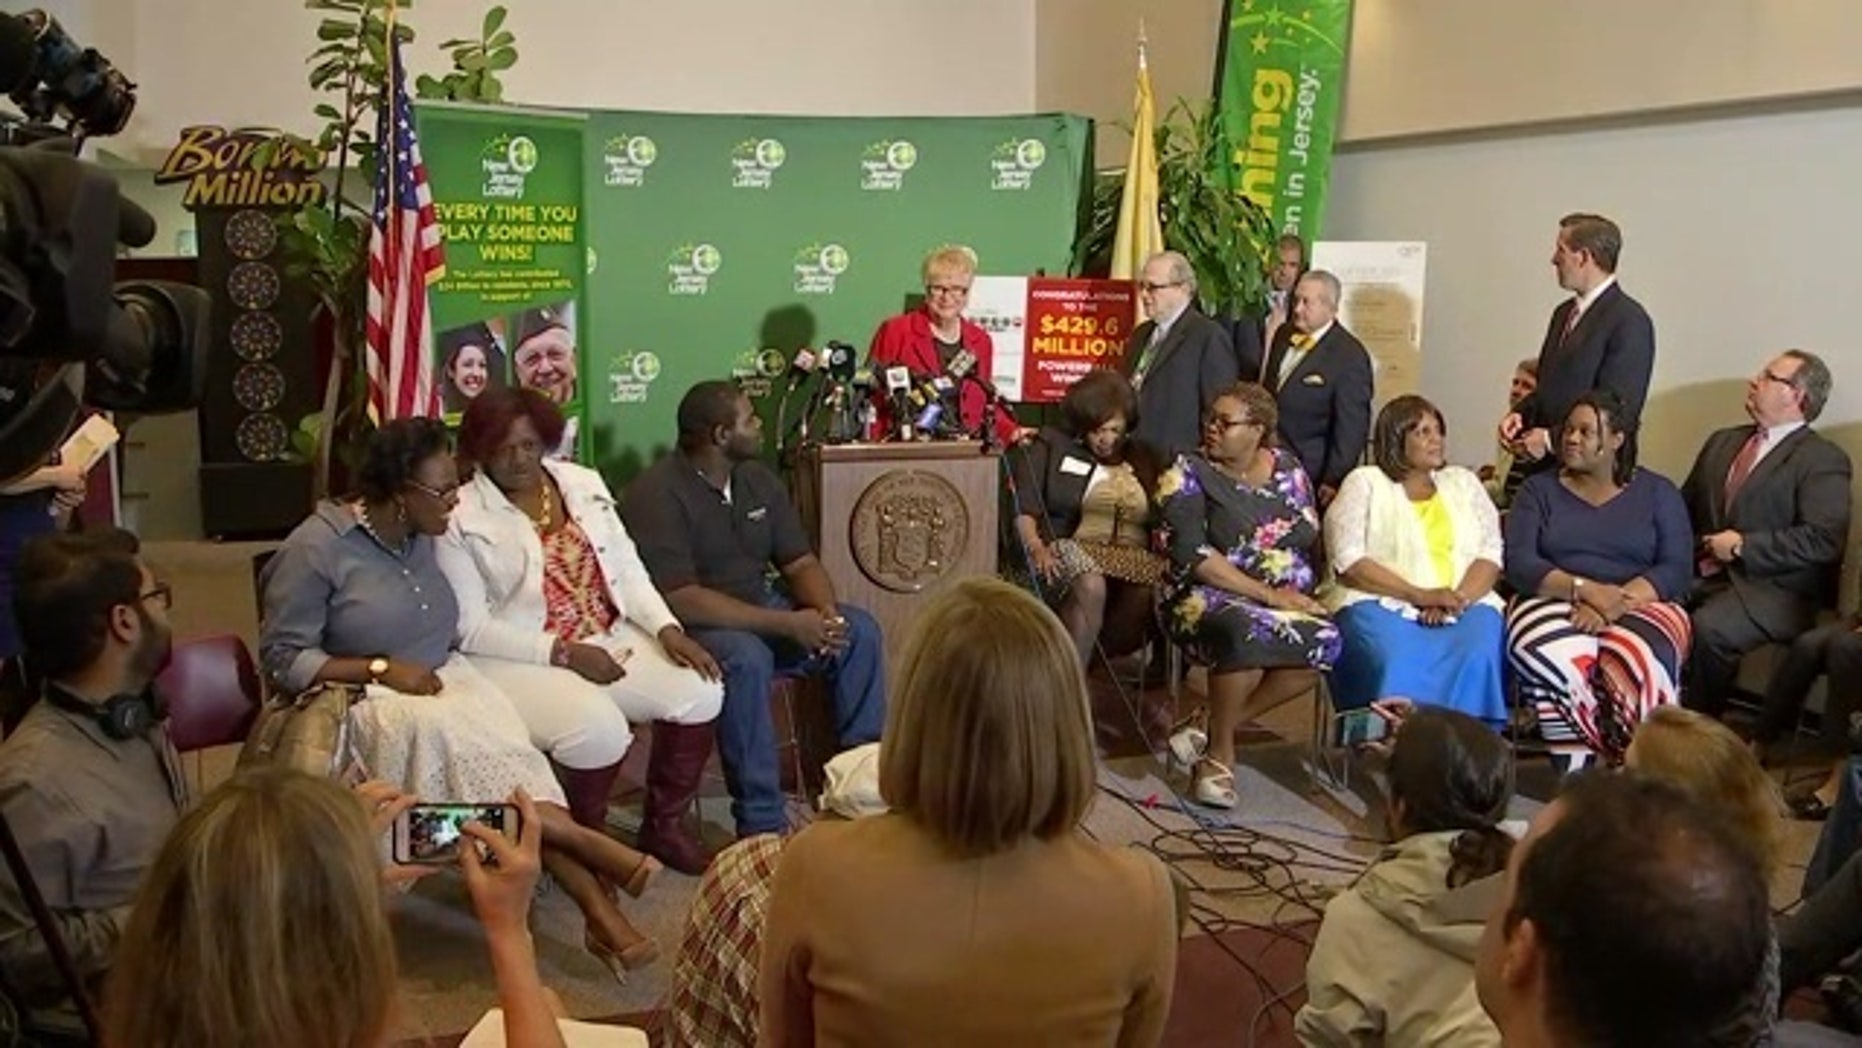 The Smith family with lottery officials at a news conference.